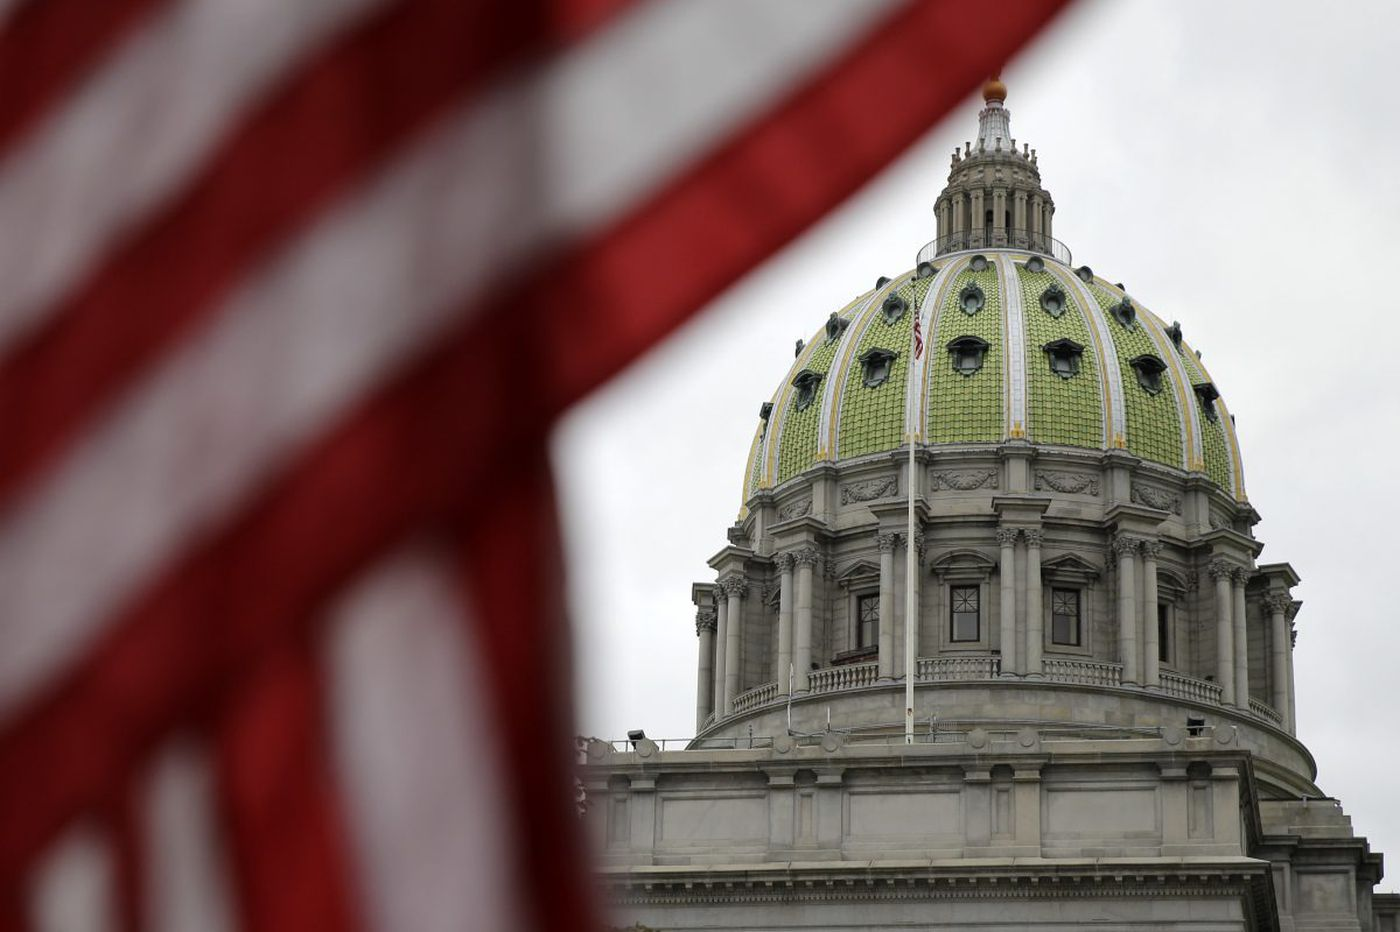 Pa. lawmakers approve spending plan on time - but still no plan to pay for it